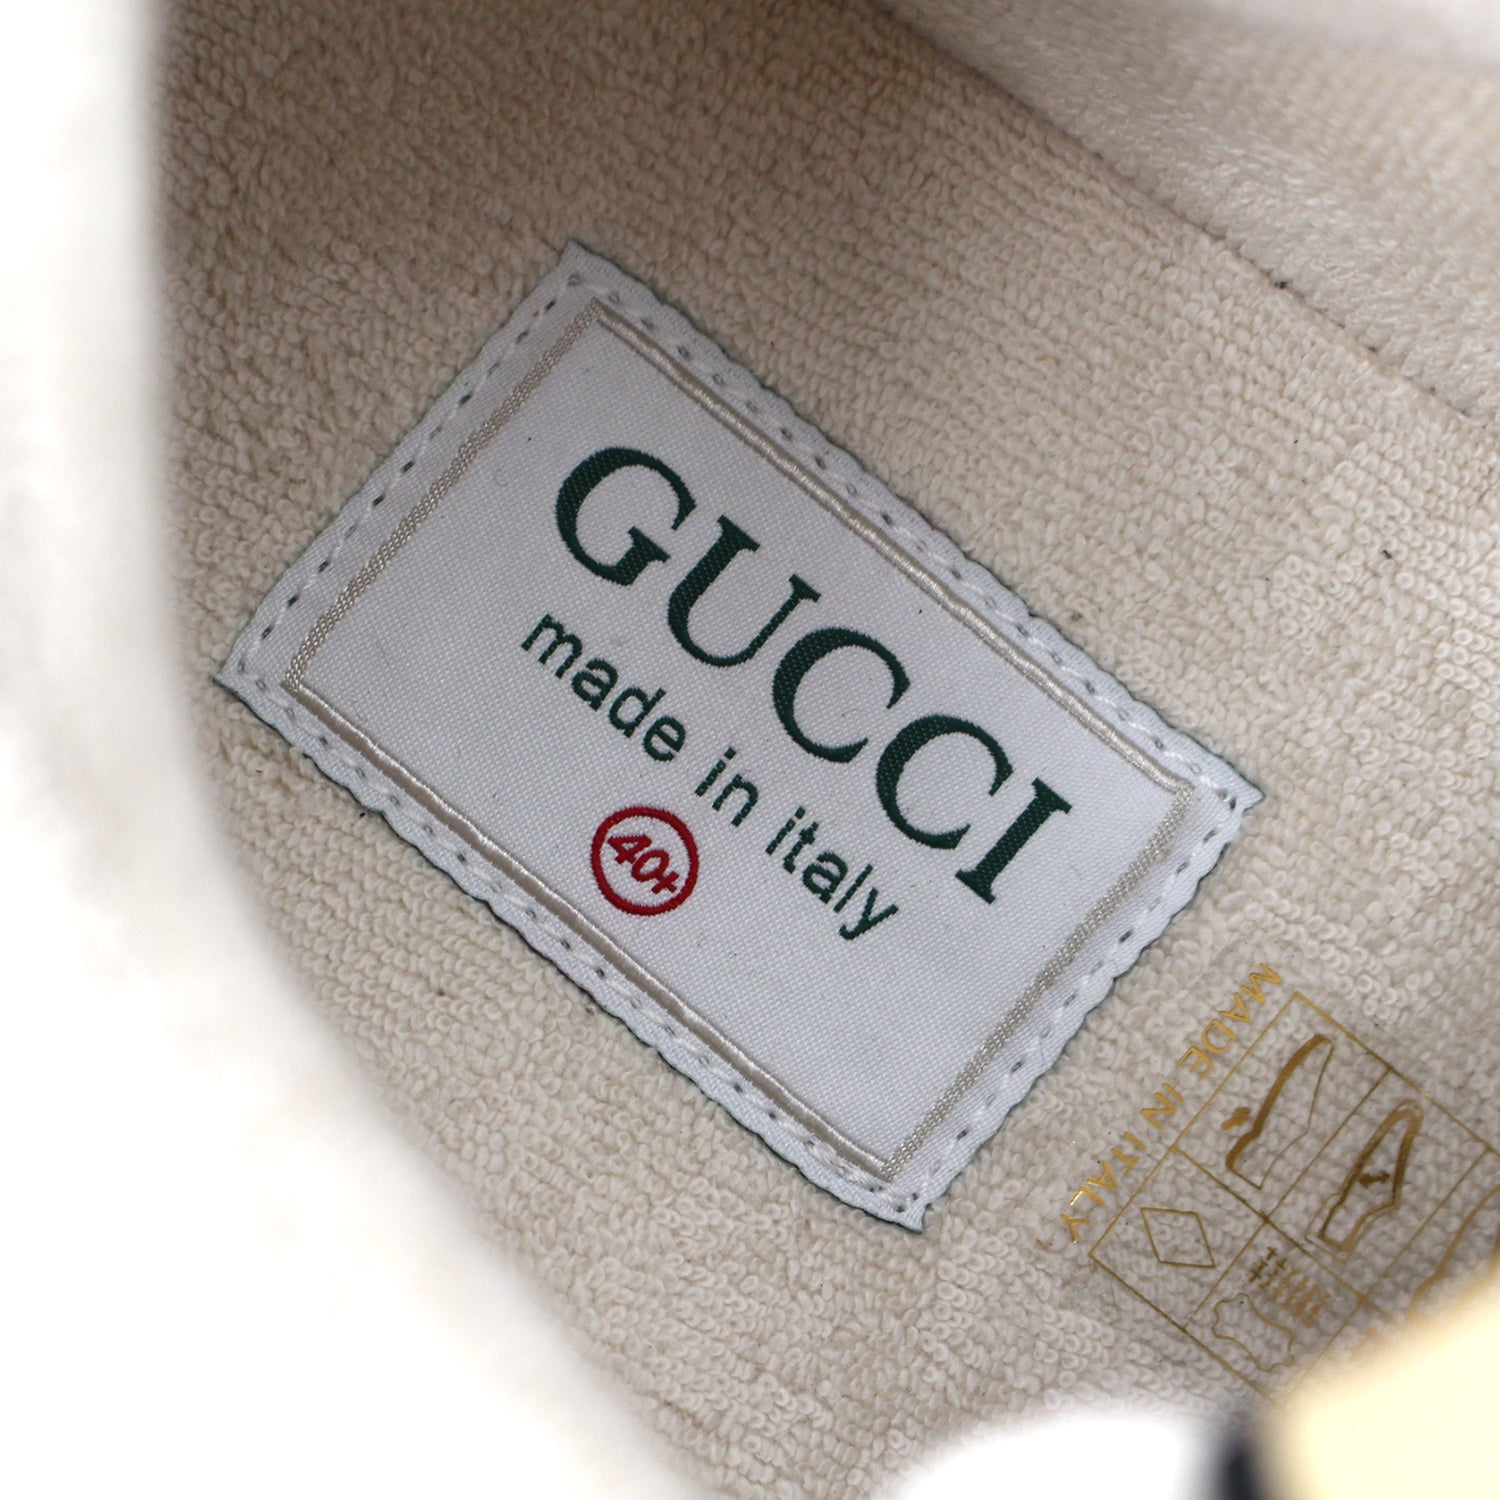 Gucci Leather Ultrapace Sneakers